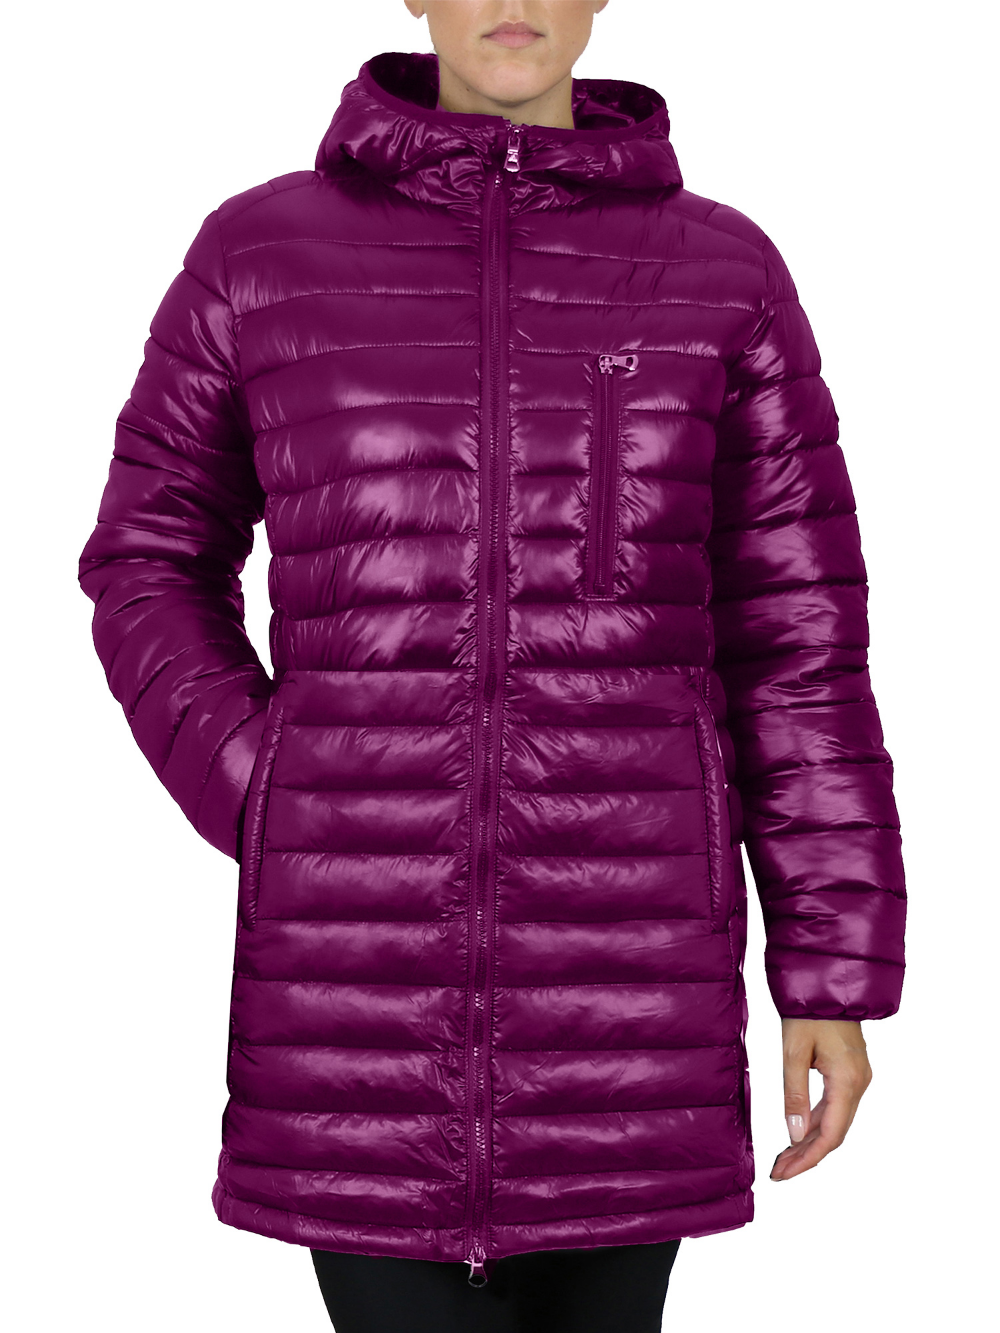 Gbh Women S Silhouette Style Puffer Jacket With Detachable Hood Slim Fit Design Walmart Com Long Puffer Jacket Puffer Jackets Jackets [ 1333 x 1000 Pixel ]